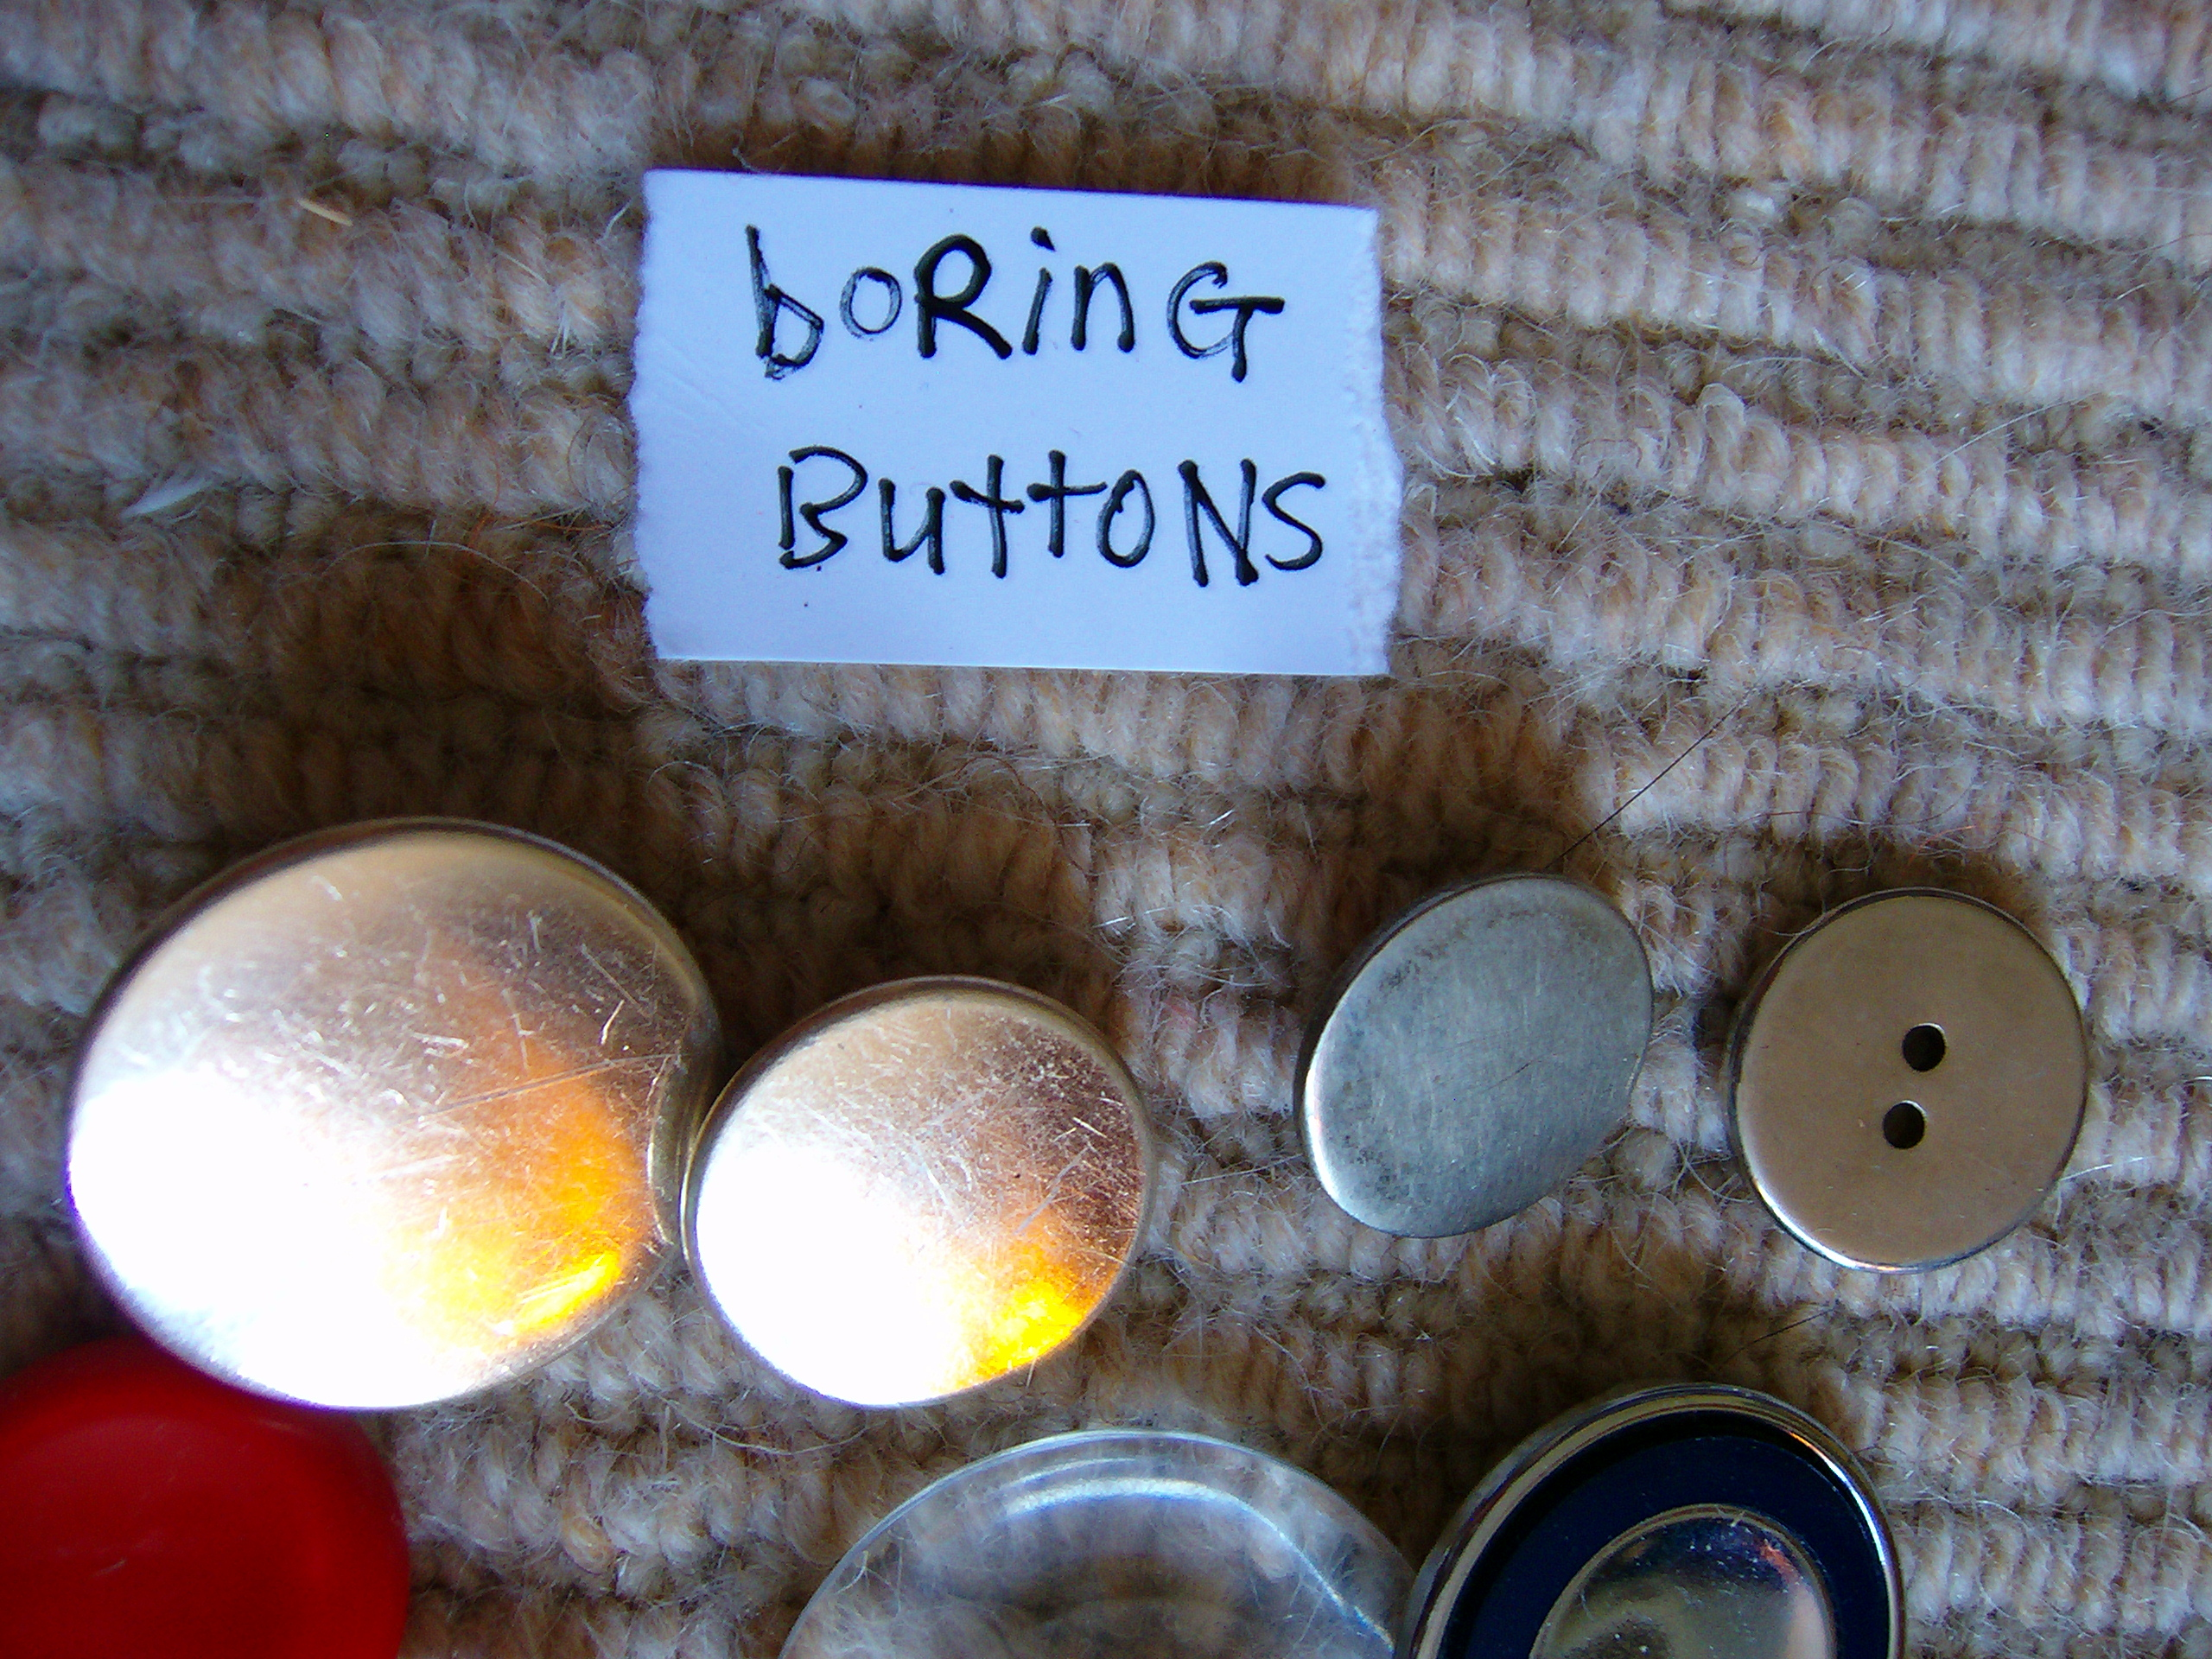 buttons = boring buttons